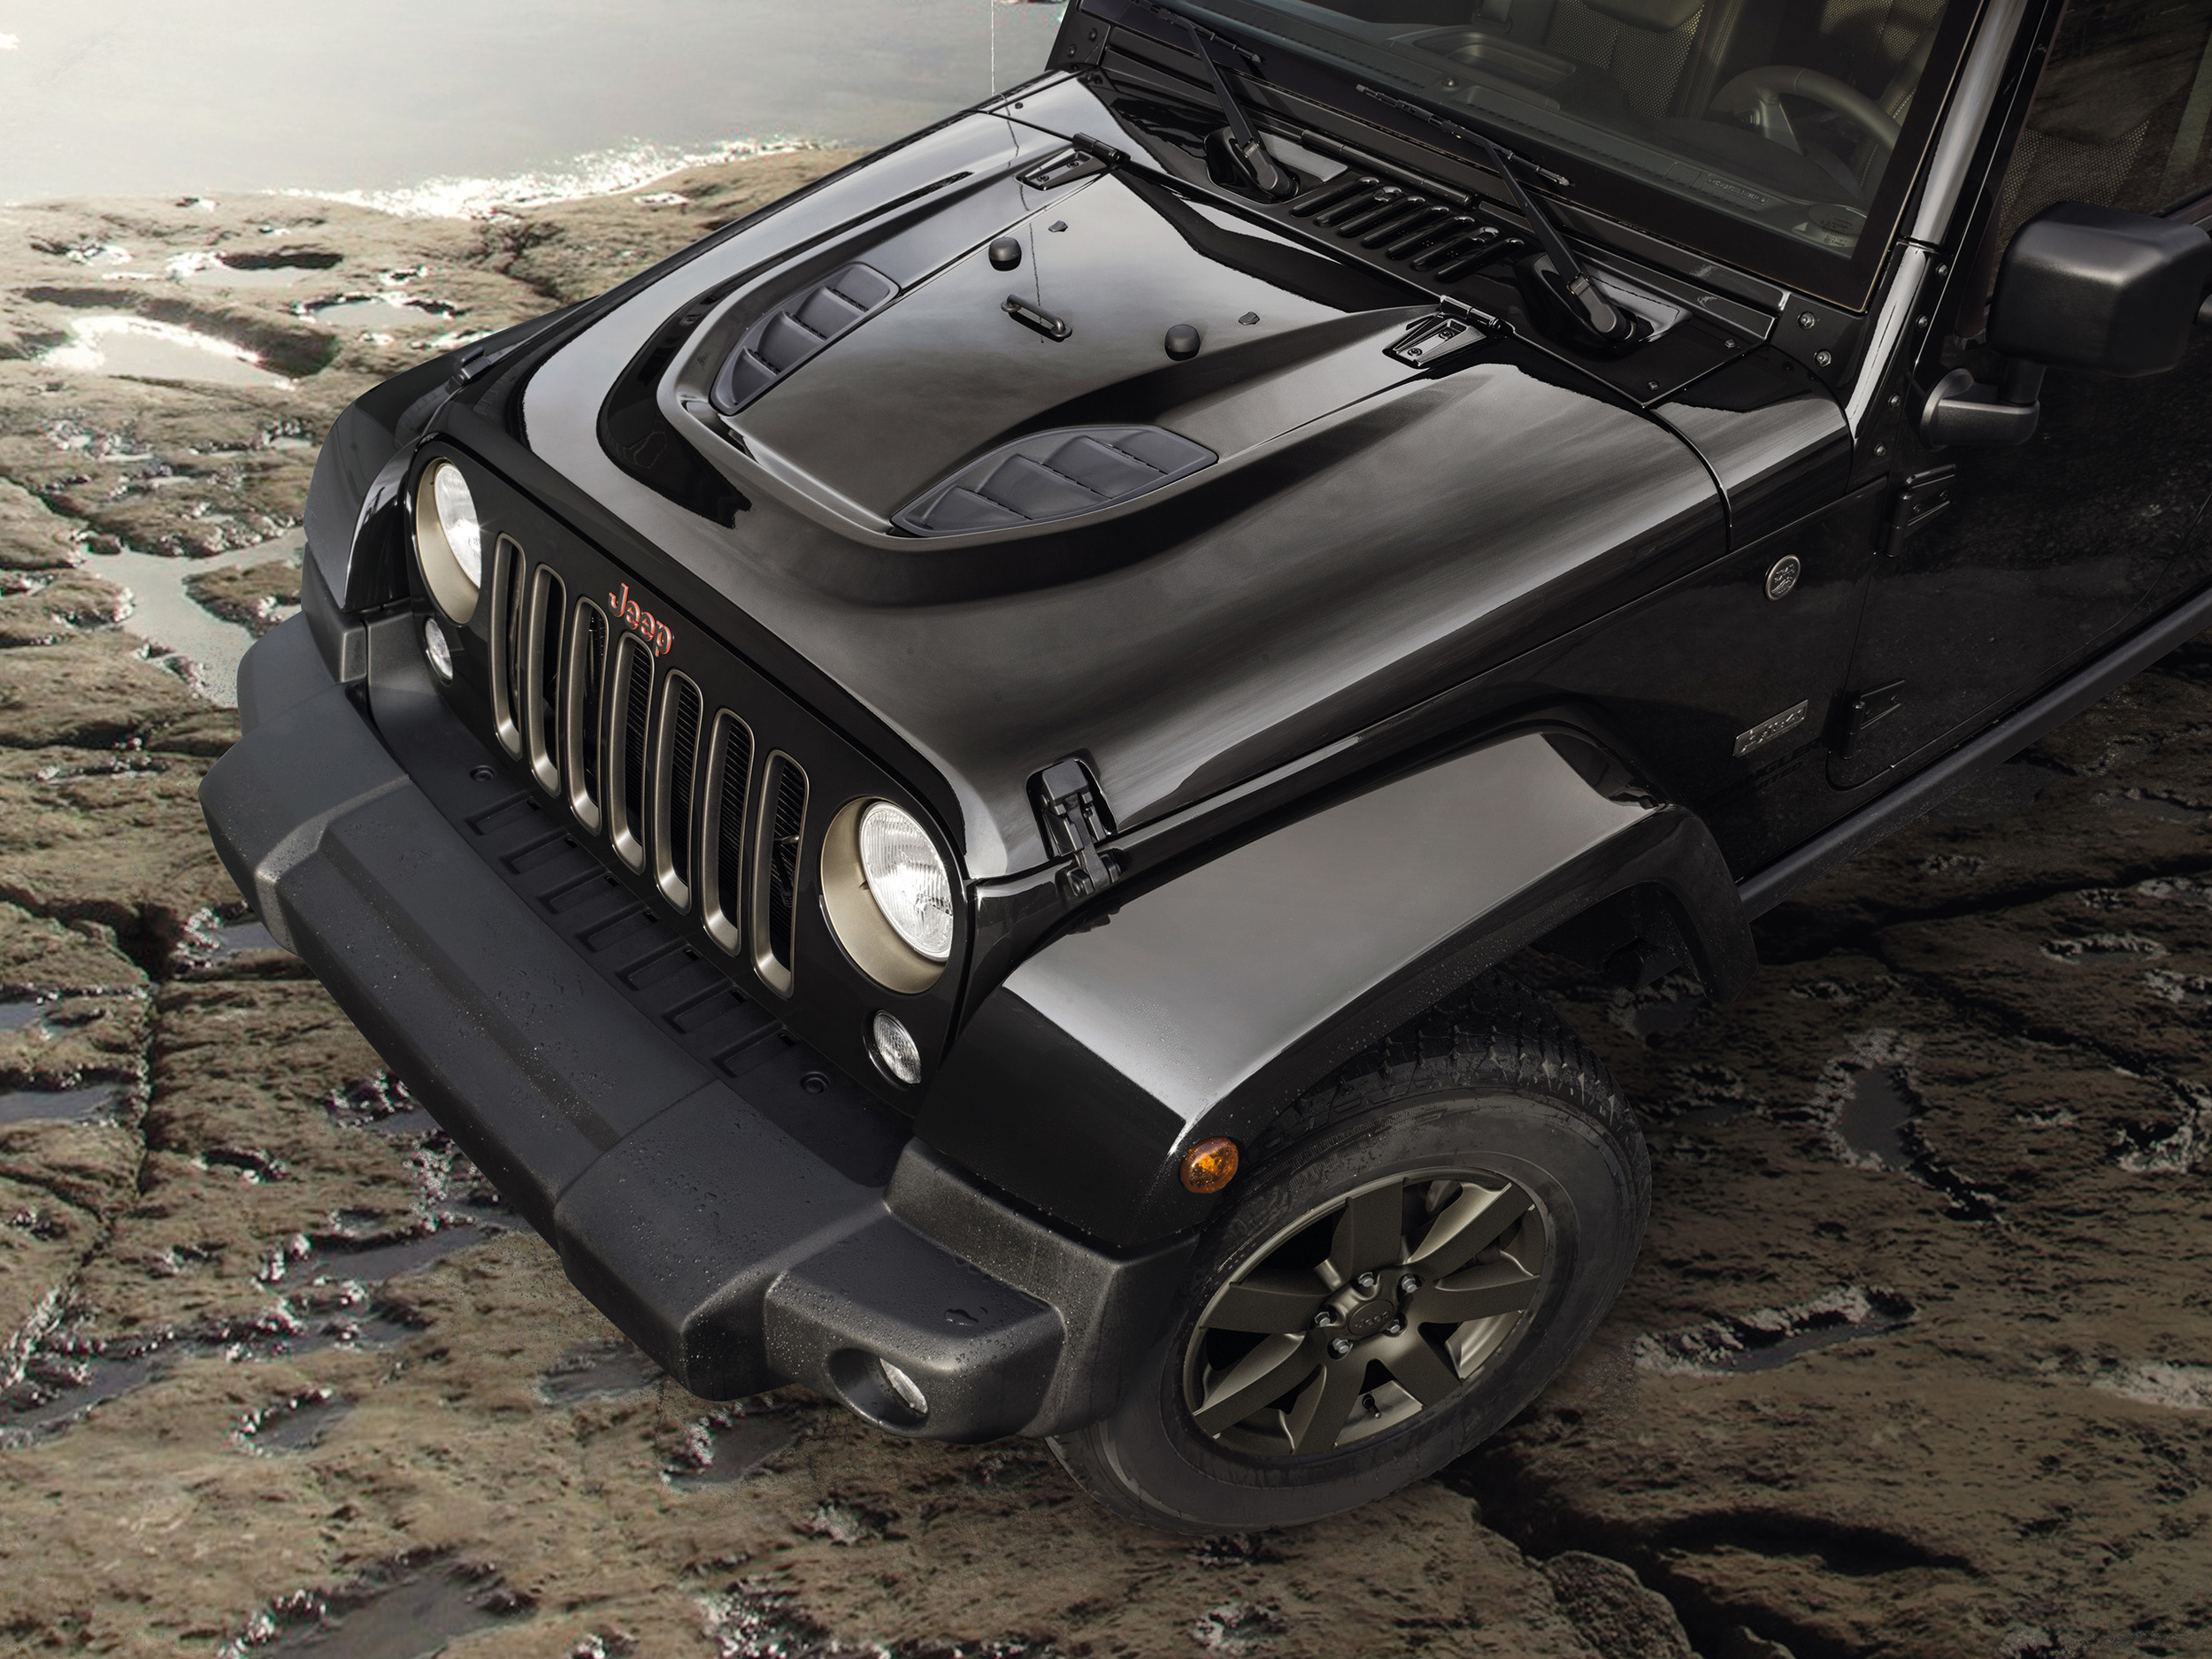 160224_Jeep_Wrangler_75th_Anniversary_03.jpg